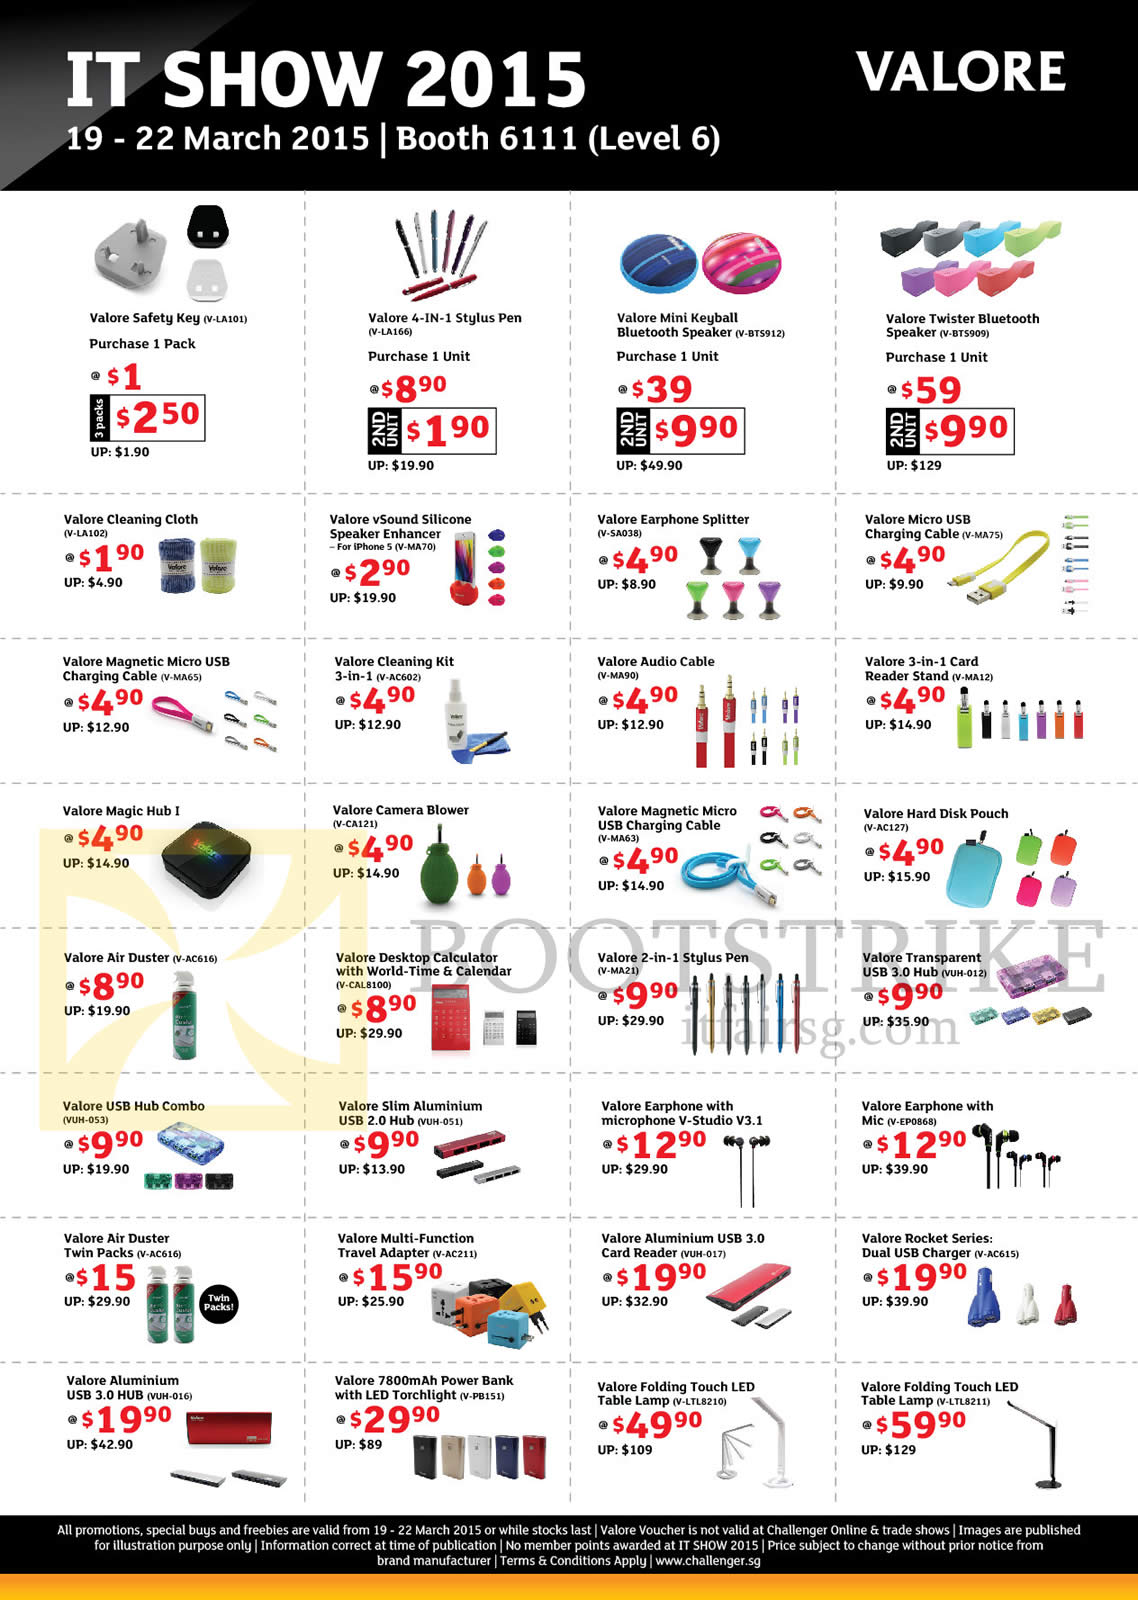 IT SHOW 2015 price list image brochure of Challenger Valore Accessories Bluetooth Speaker, Charging Cable, Calculator, Air Duster, Torchlight, LED Table Lamp, USB Hub, Card Reader